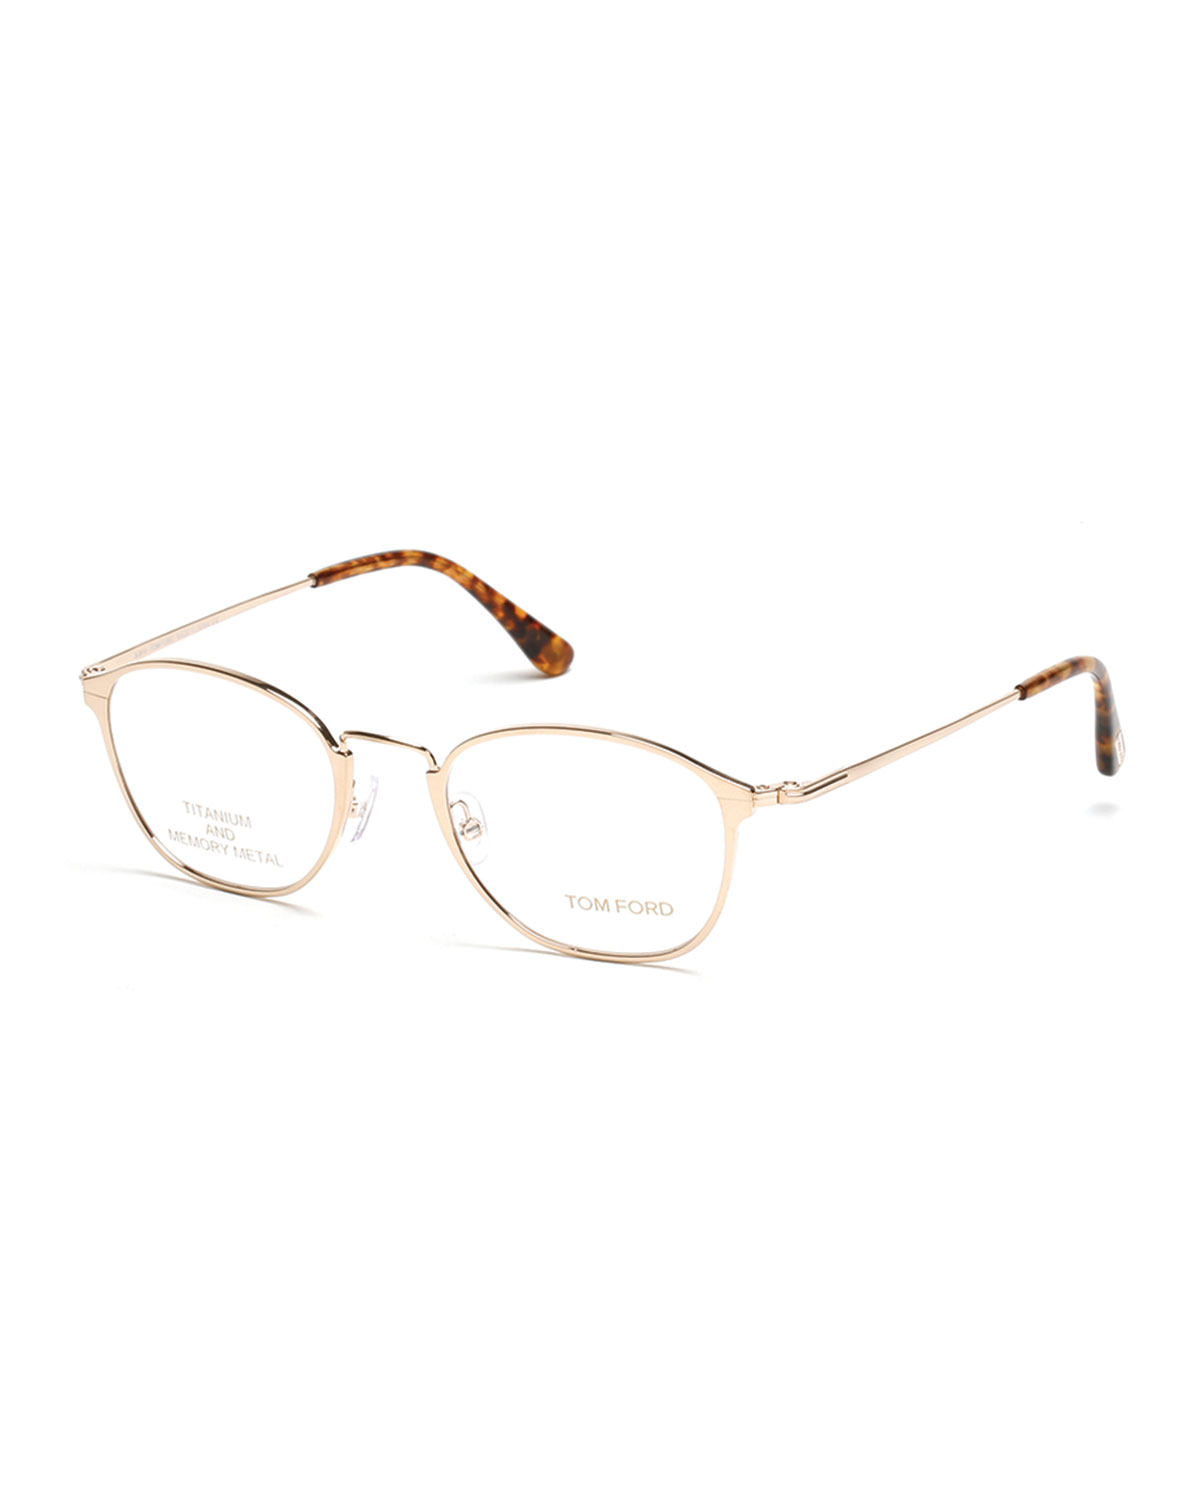 900cc1b9470 TOM FORD Titanium Metal Eyeglasses